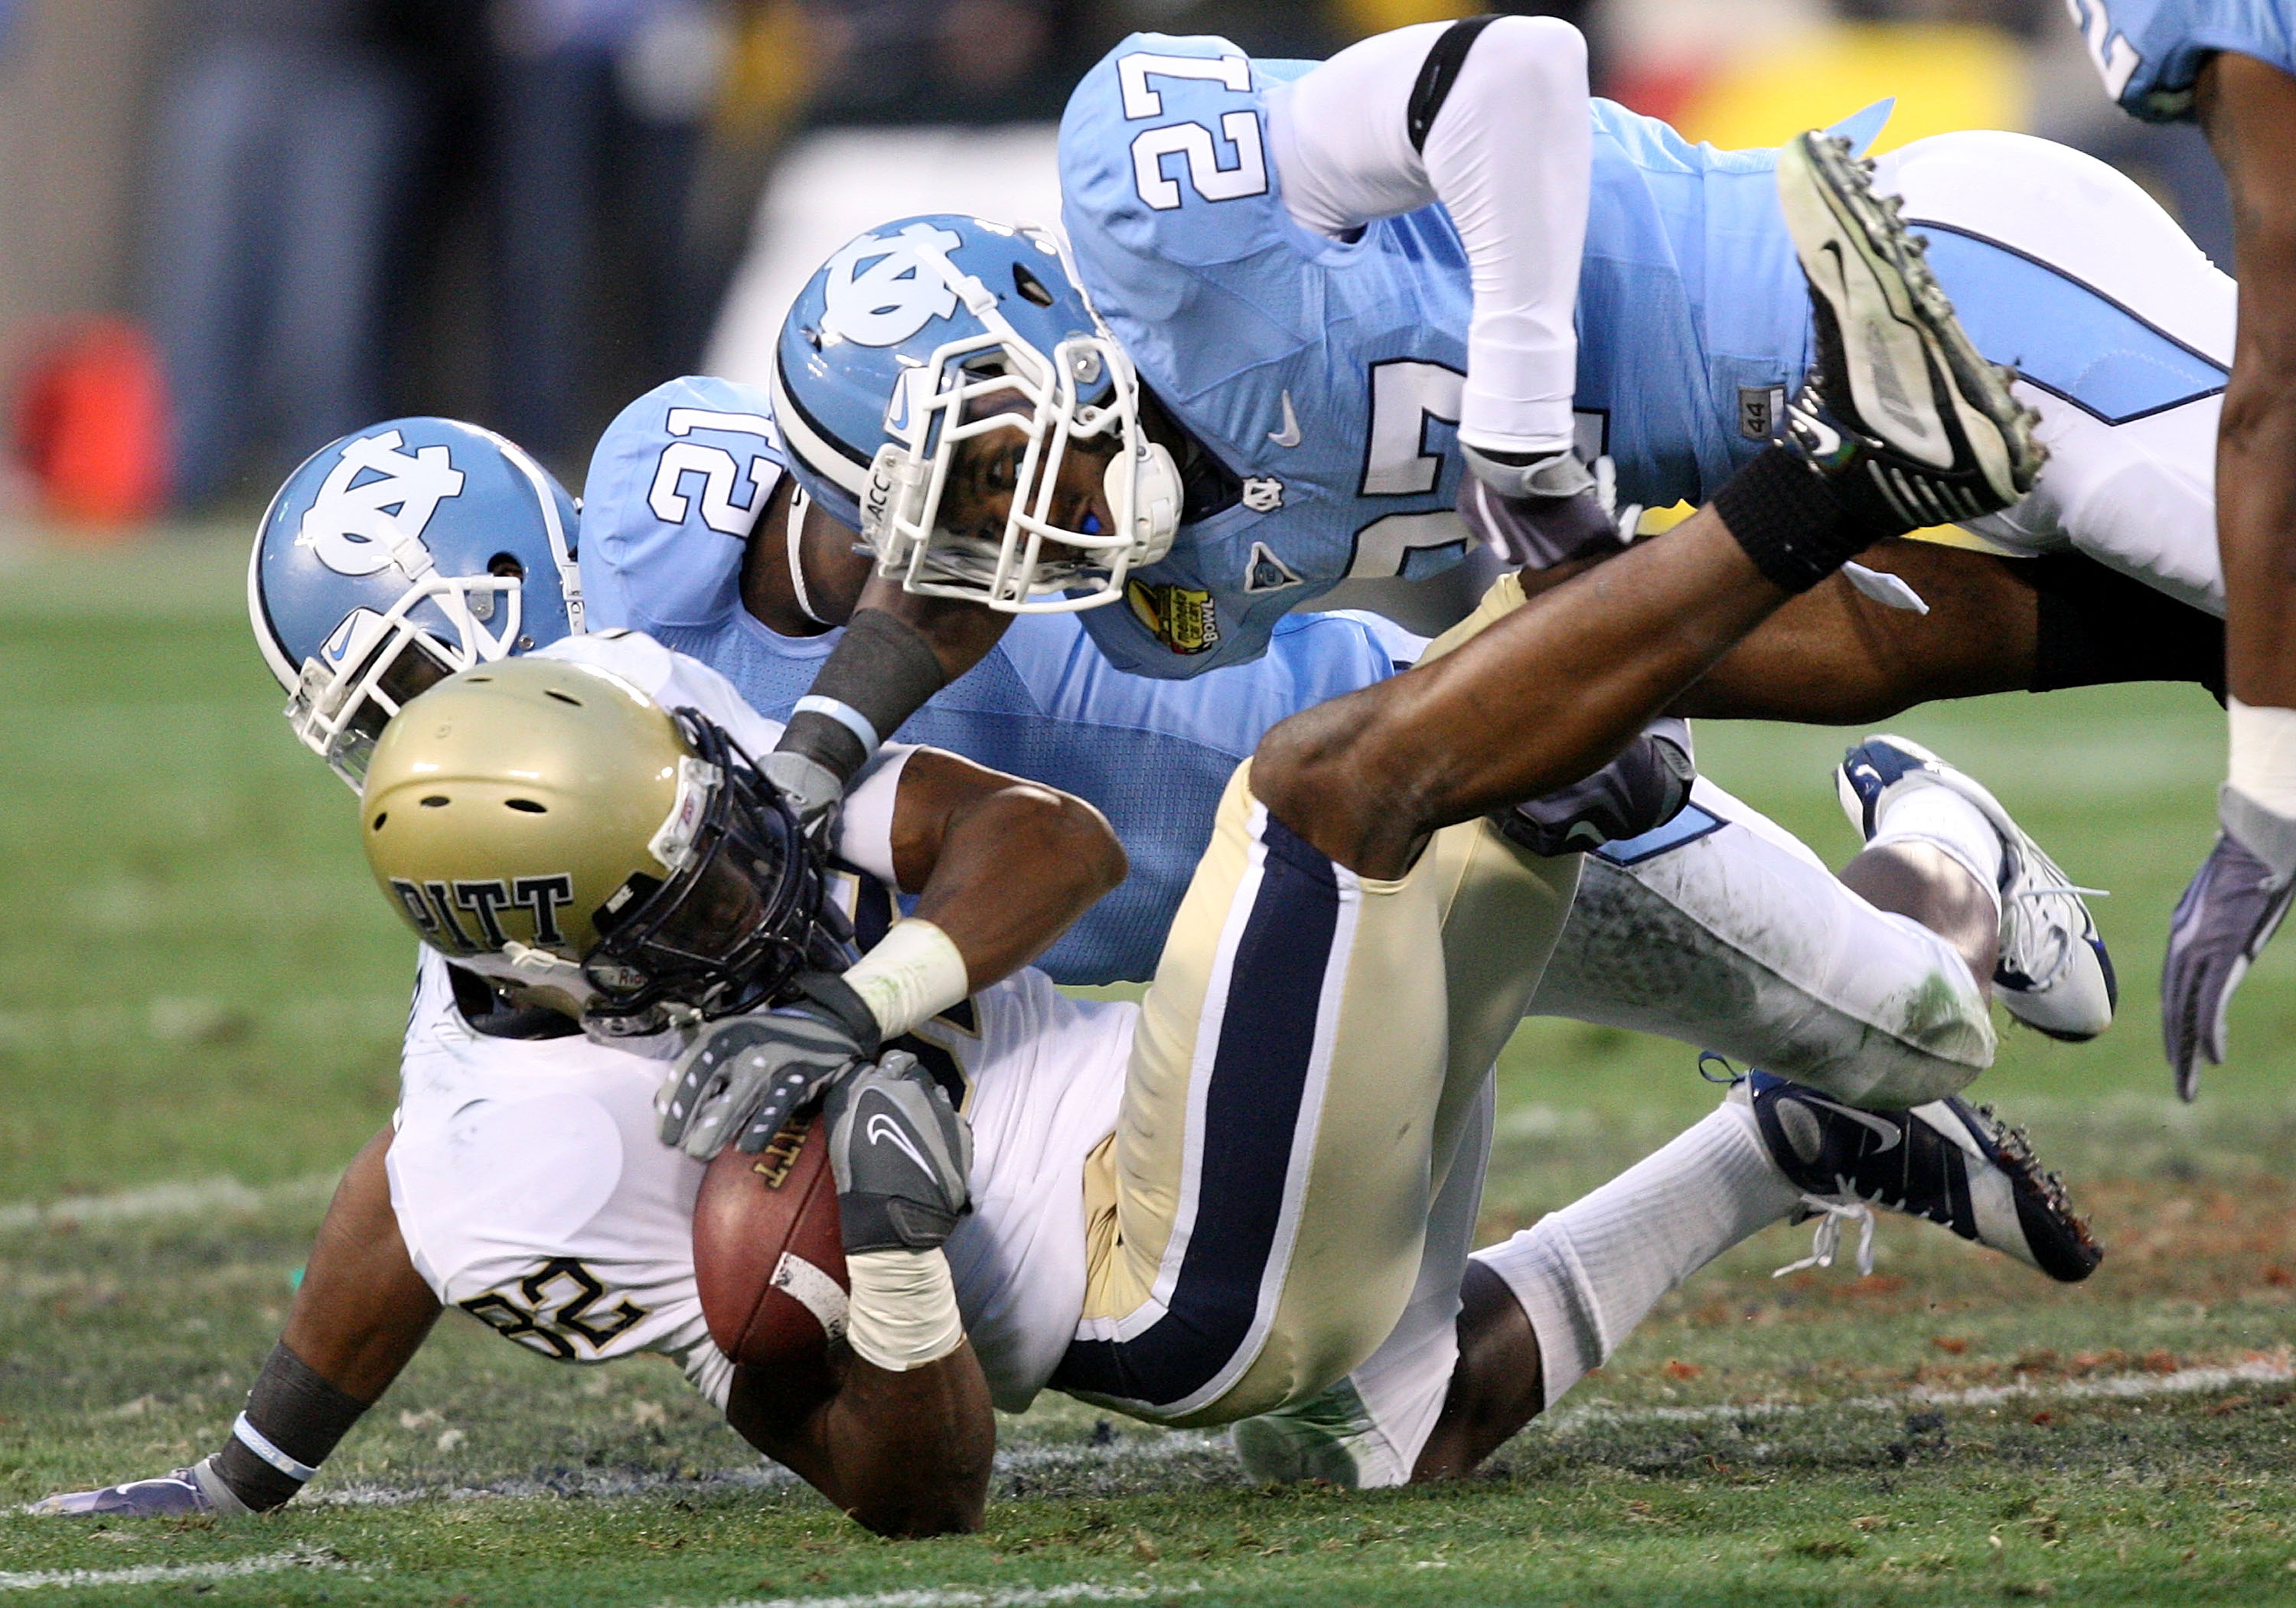 CHARLOTTE, NC - DECEMBER 26:  Jonathan Baldwin #82 of the Pittsburgh Panthers is tackled by teammates Da'Norris Searcy #21 and Deunta Williams #27 of the North Carolina Tar Heels during their game on December 26, 2009 in Charlotte, North Carolina.  (Photo